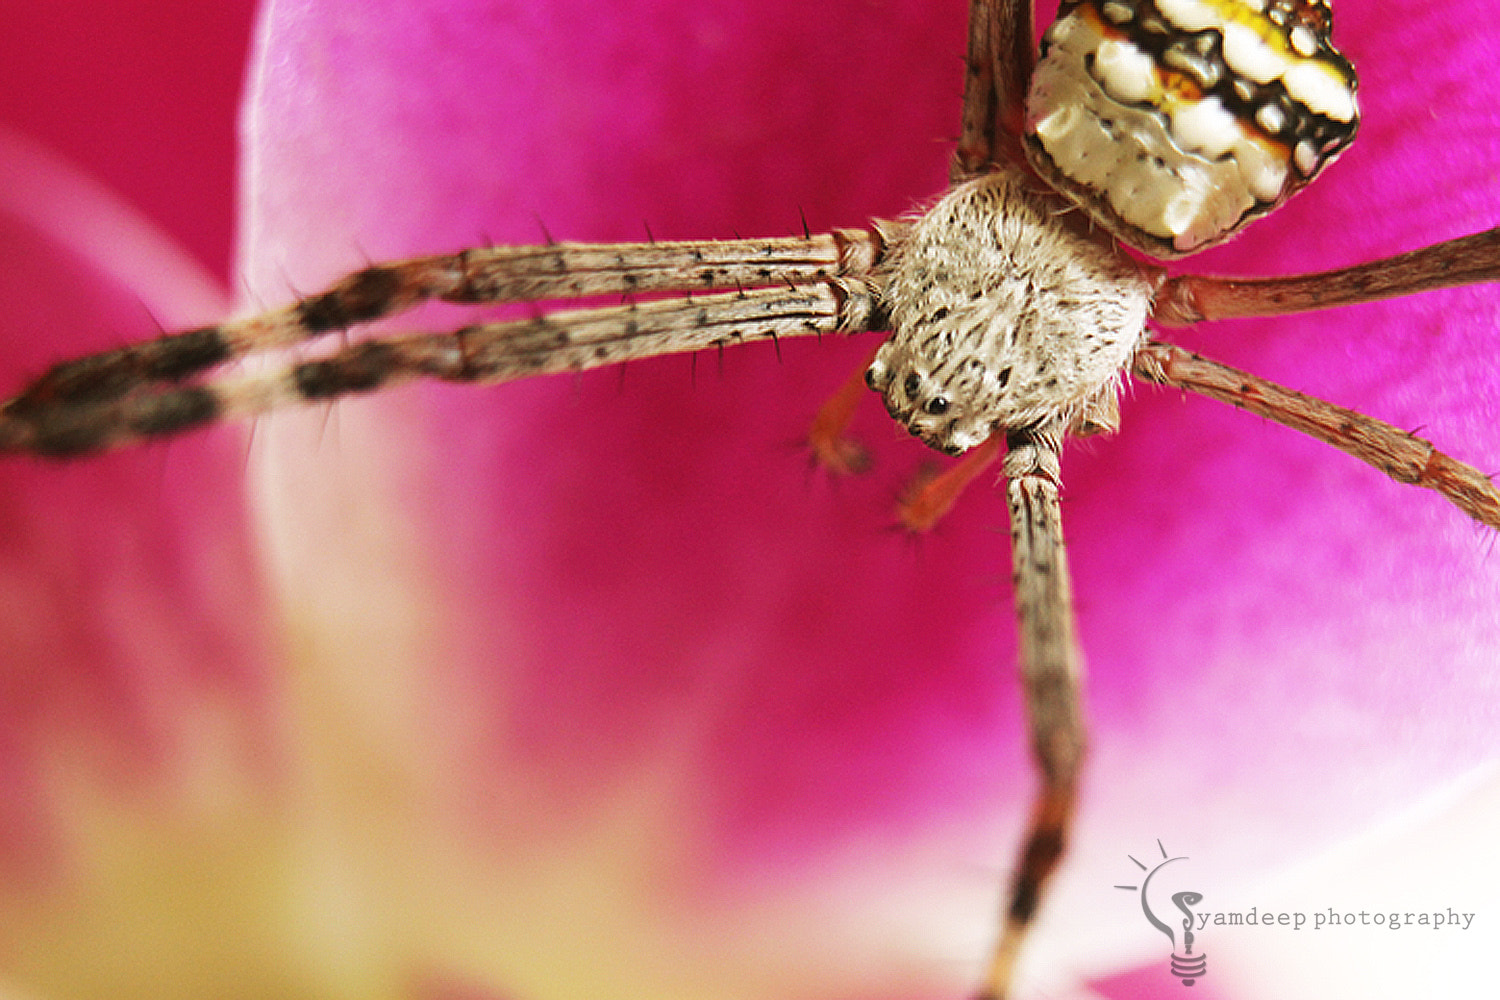 Photograph SPIDEY by Syamdeep Sasidharan on 500px